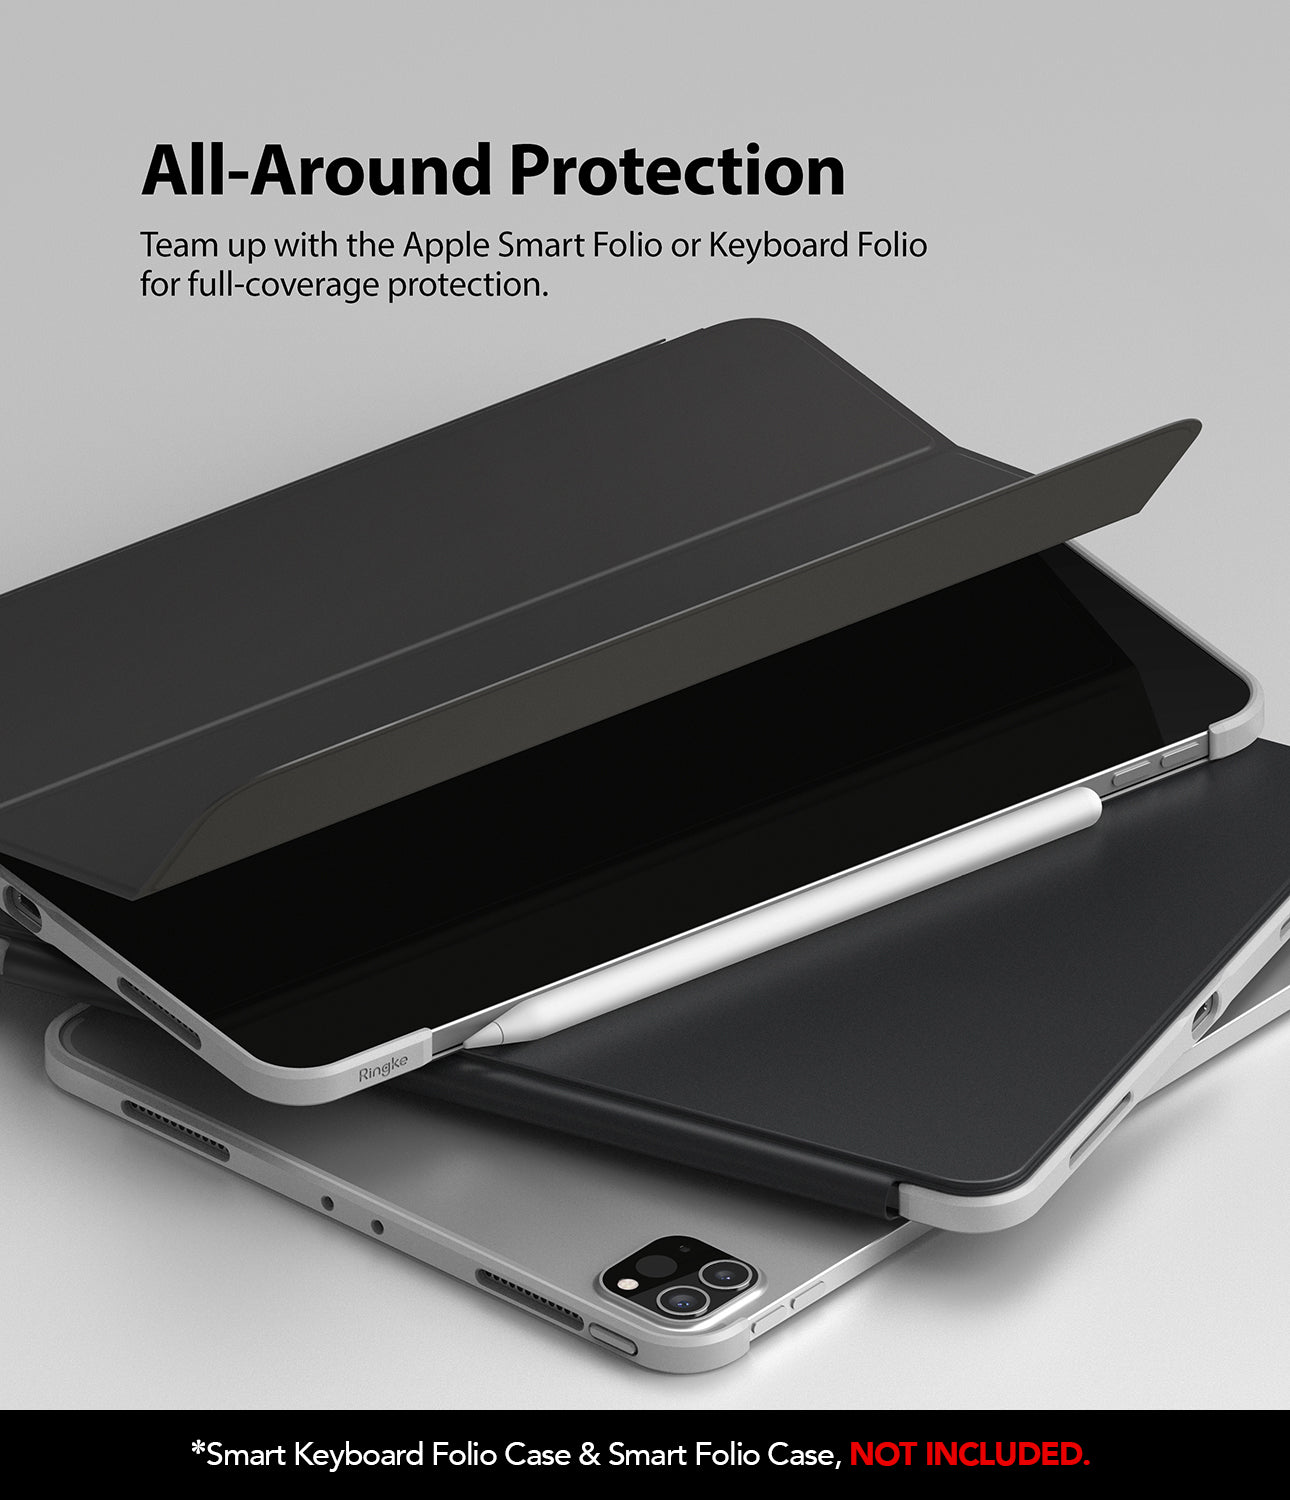 team up with apple smart folio or keyboard folio for full-coverage protection